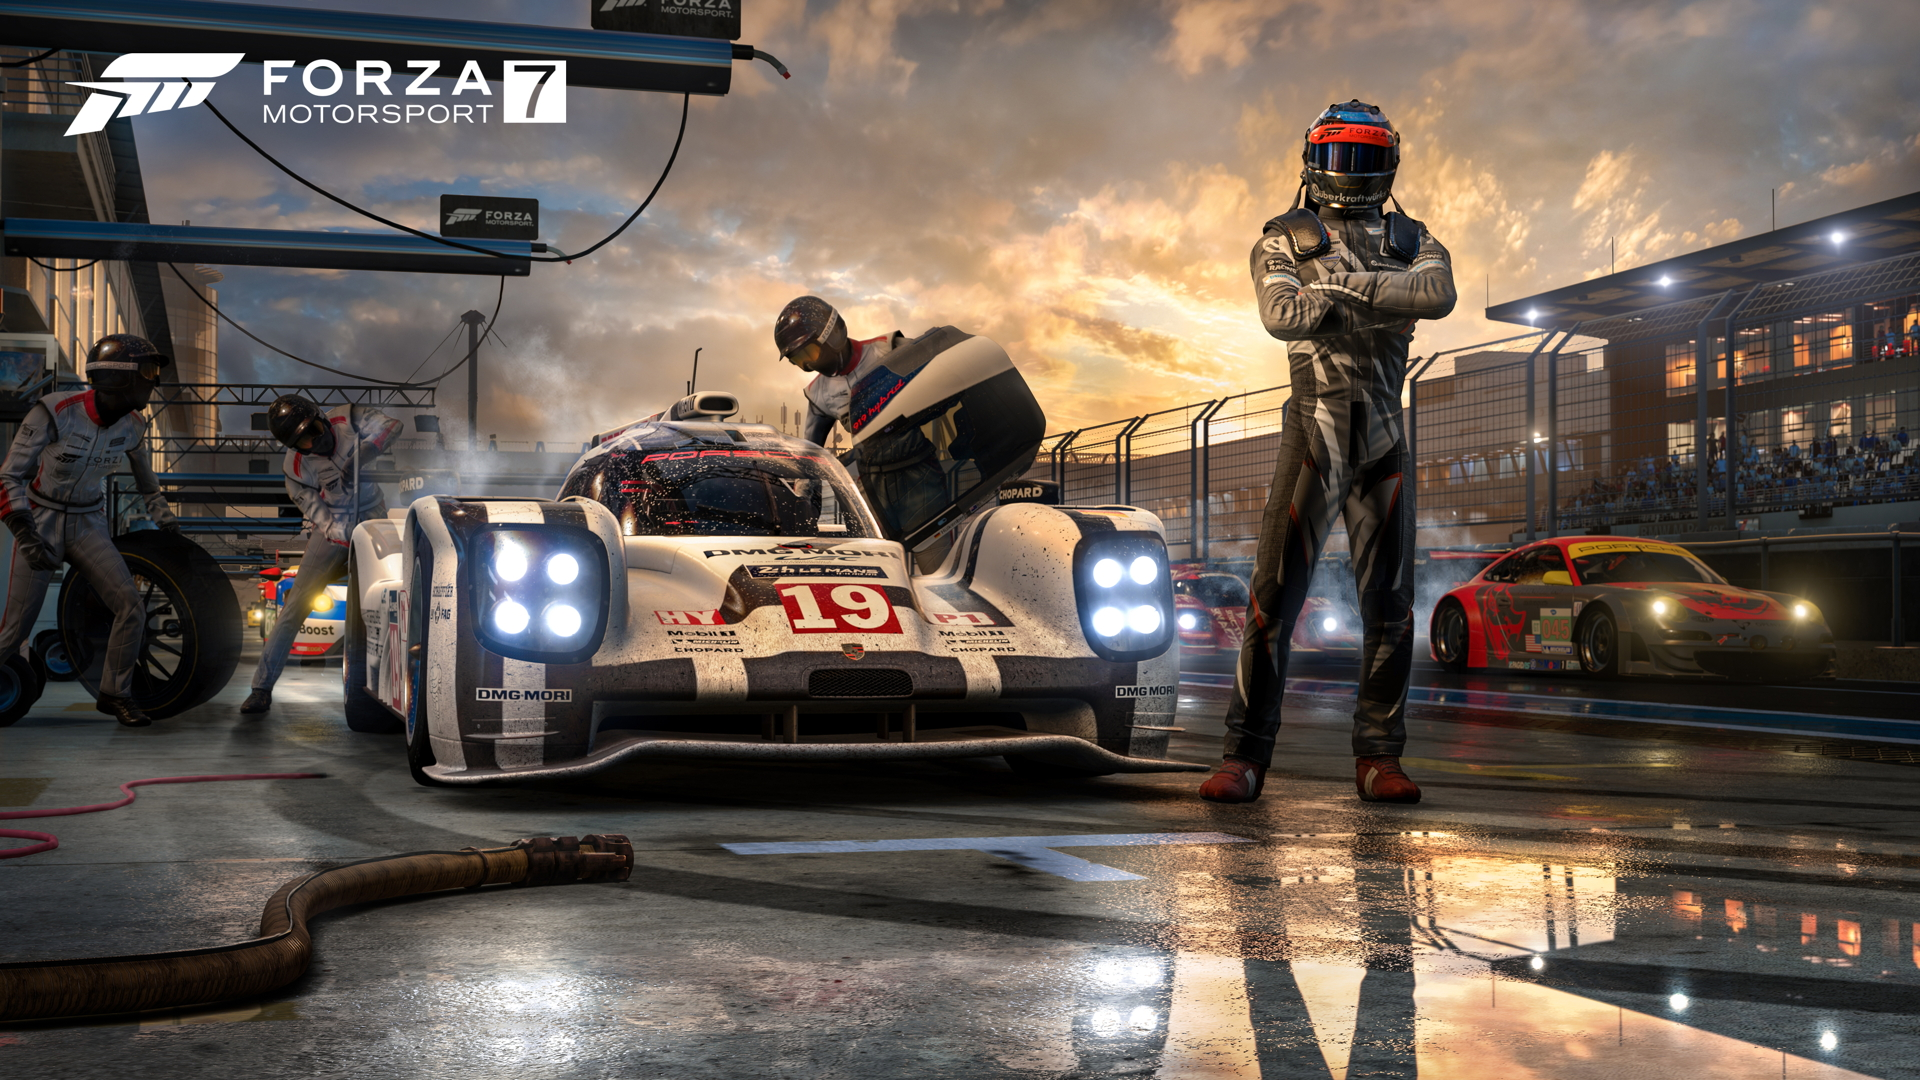 """Forza Motorsport 7 to be removed from sale due to """"end of life status"""""""